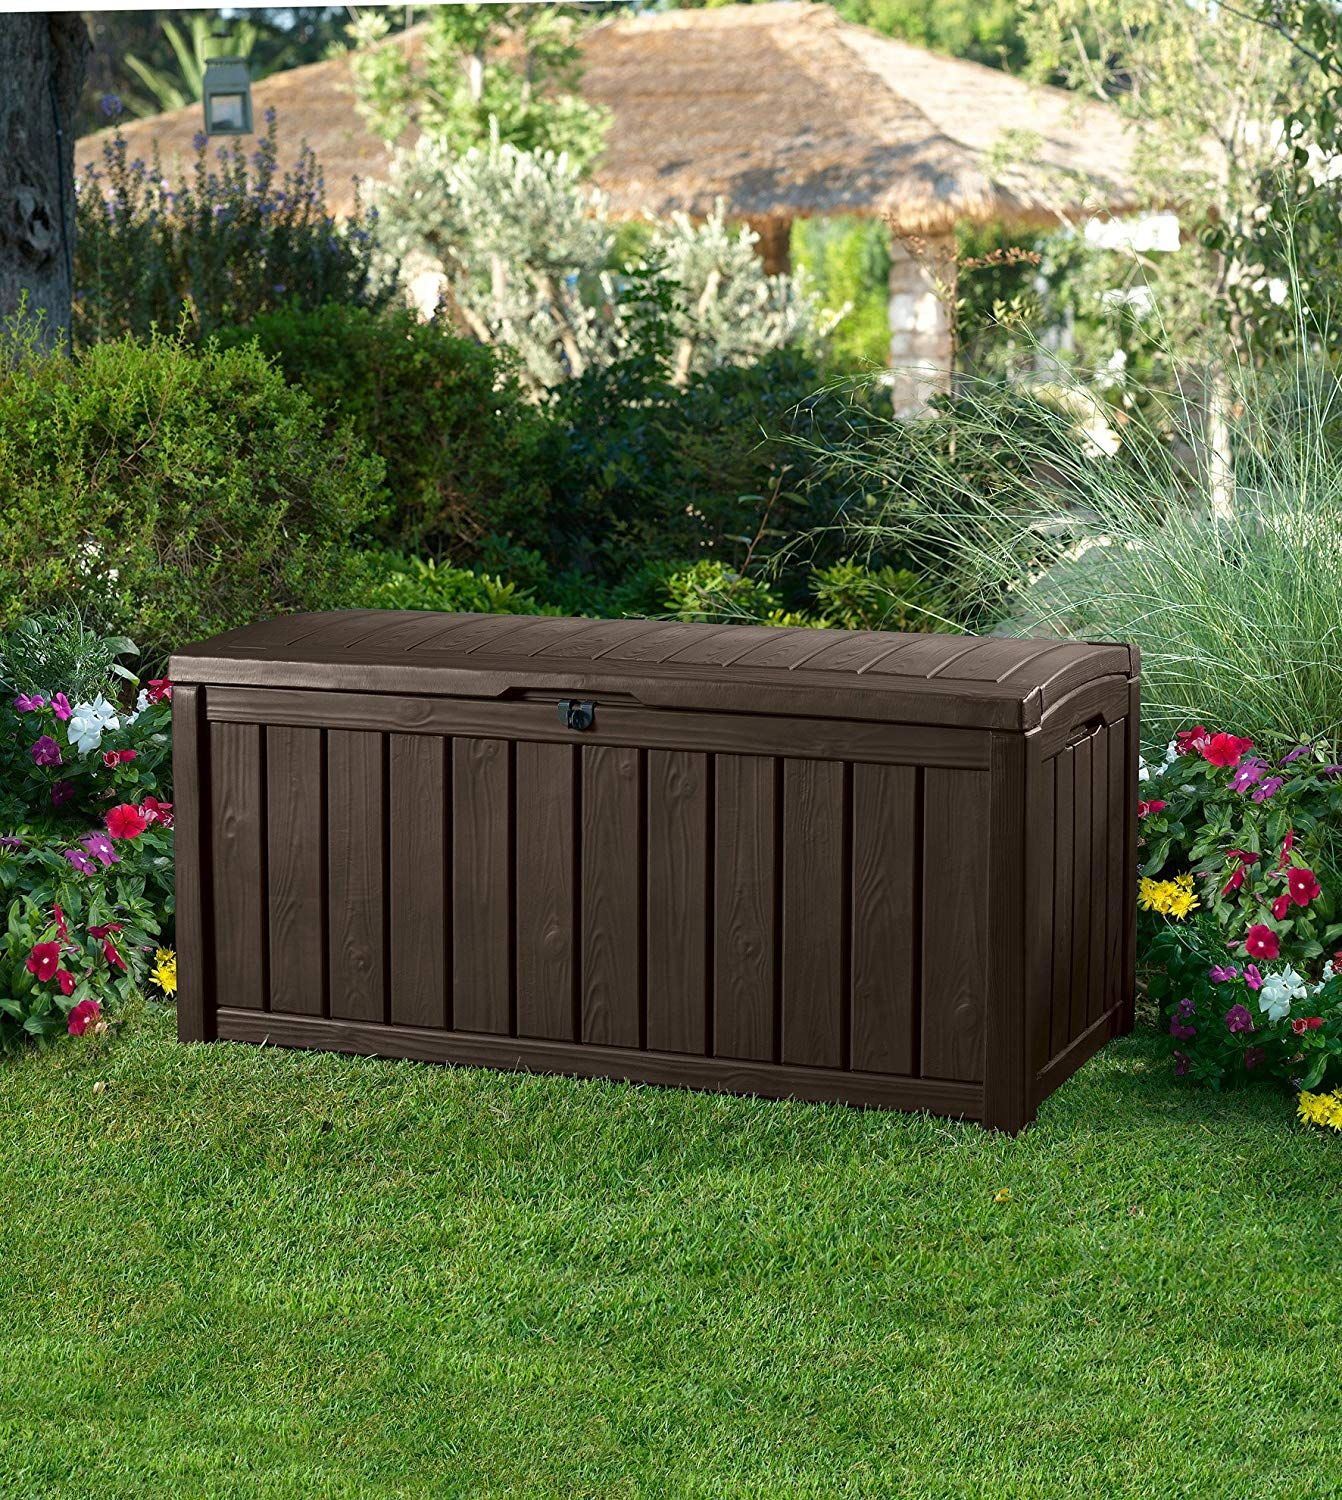 Keter Glenwood Plastic Deck Storage Container Box Outdoor Patio Furniture 101 Gal Brown By Keter Patio Storage Outdoor Storage Box Deck Storage